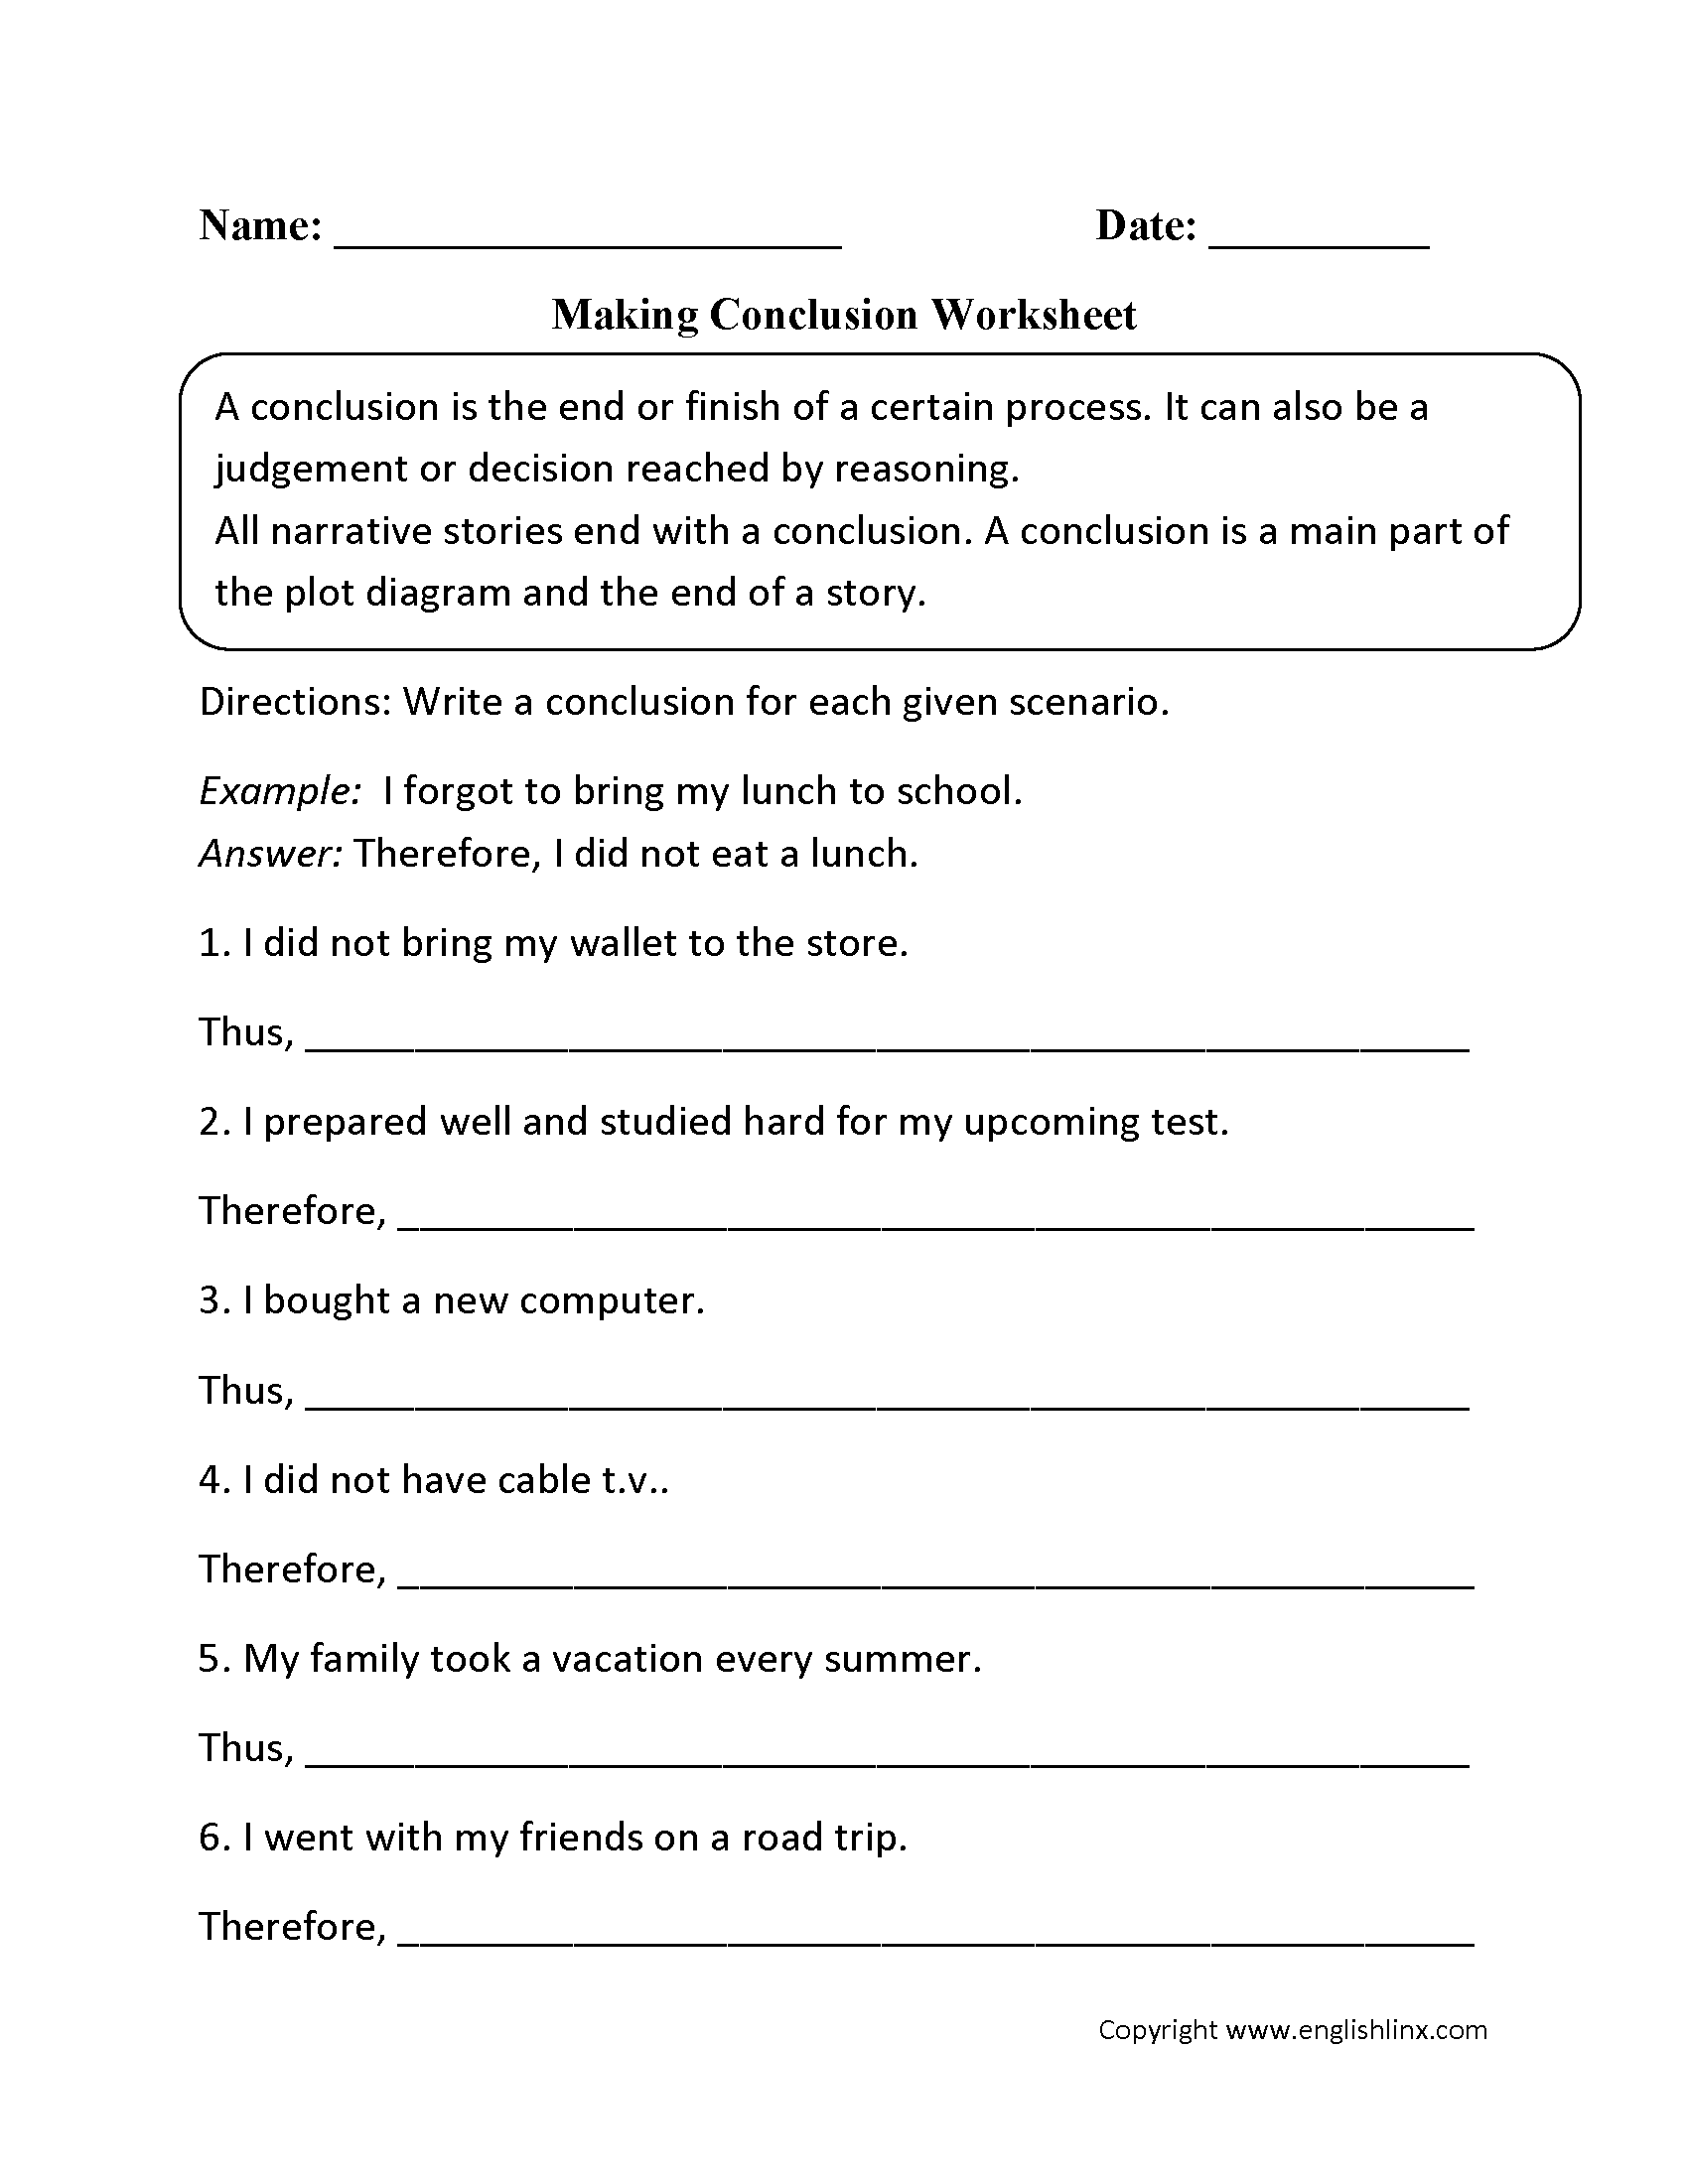 Making Conclusion Worksheet